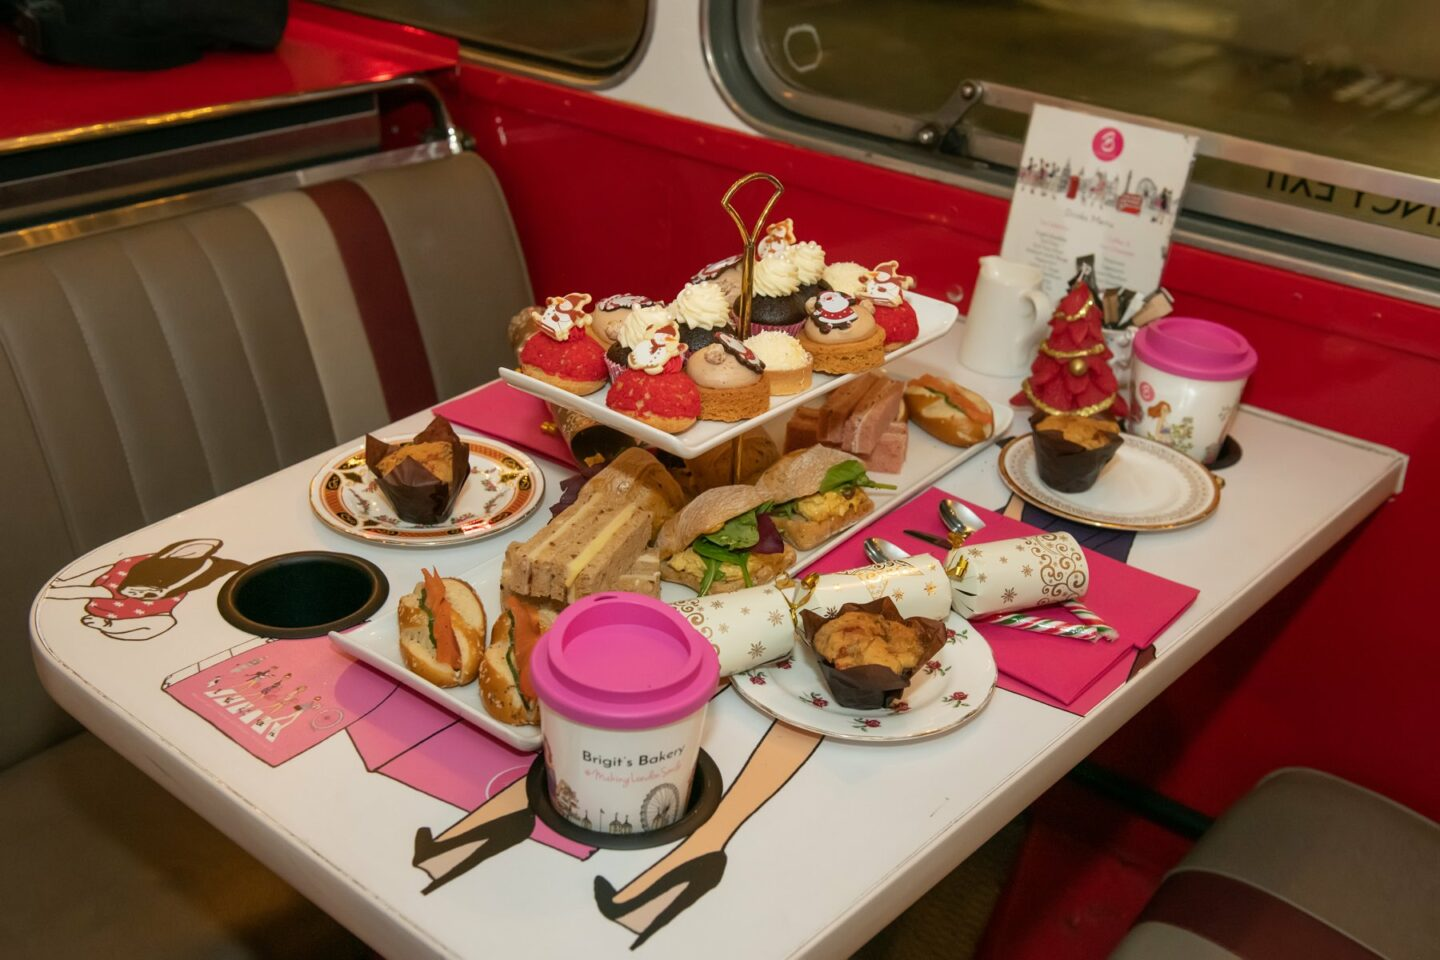 The afternoon tea on the bus